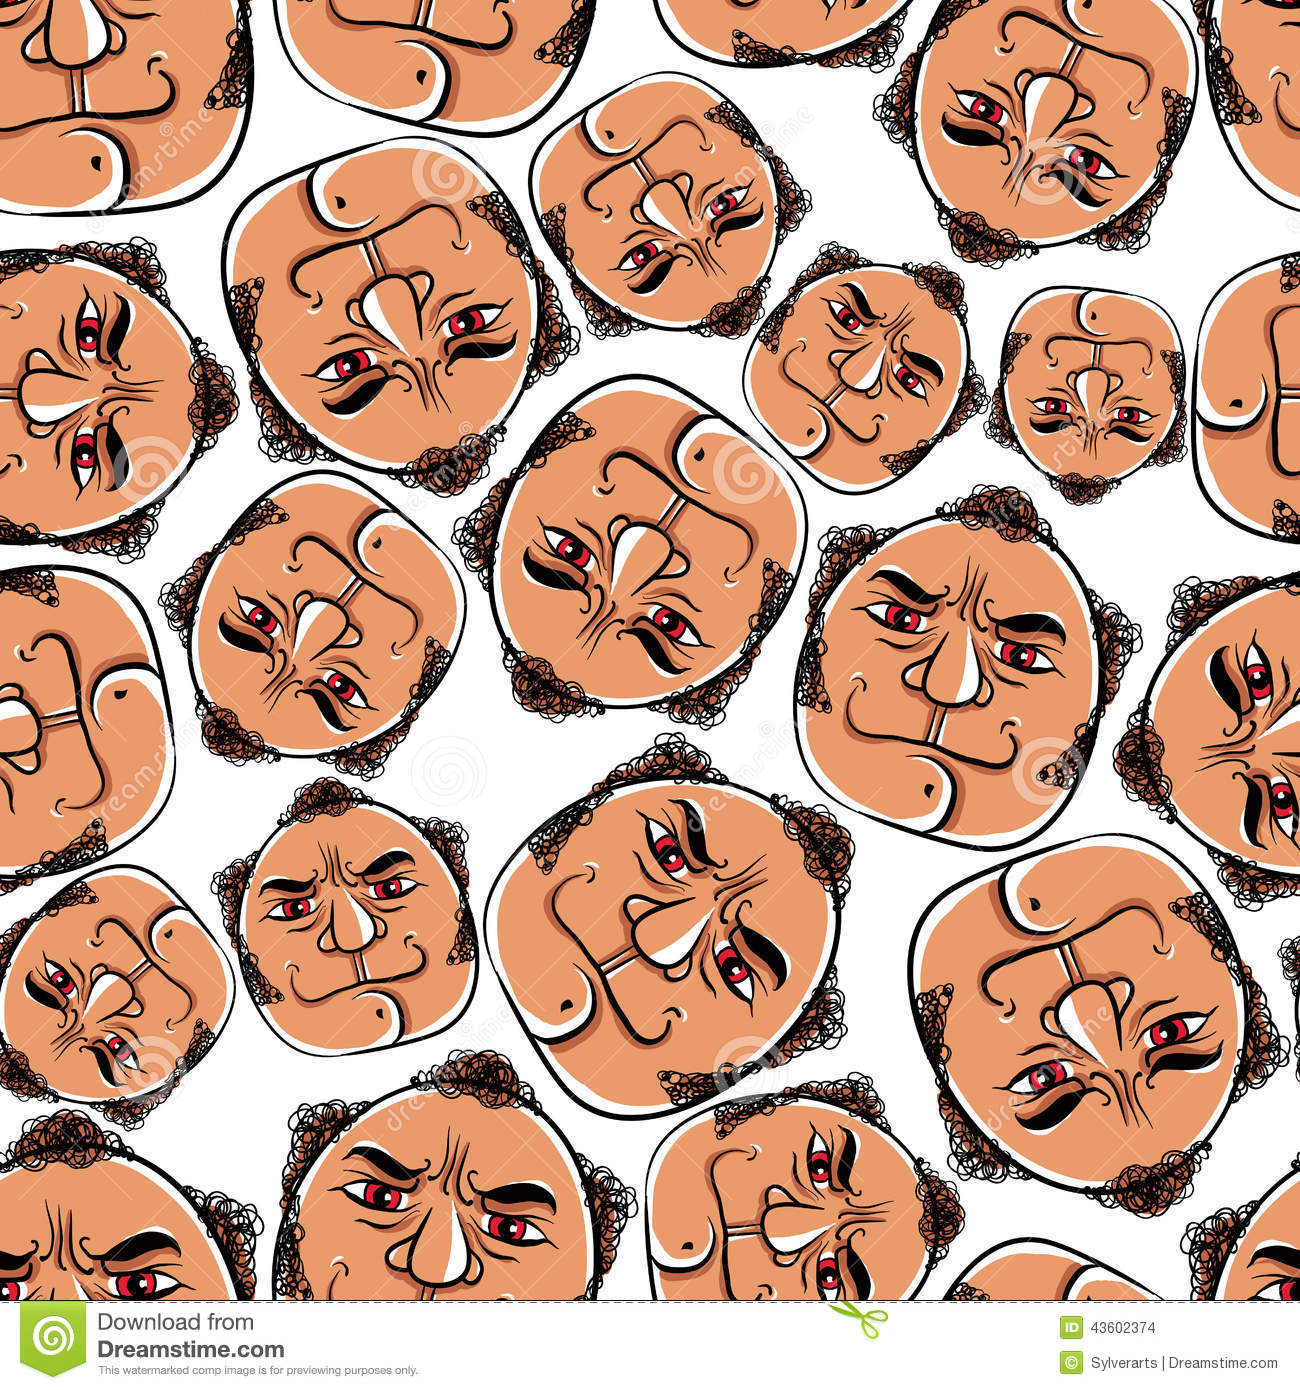 Funny Faces Seamless Background, Vector Cartoon Style